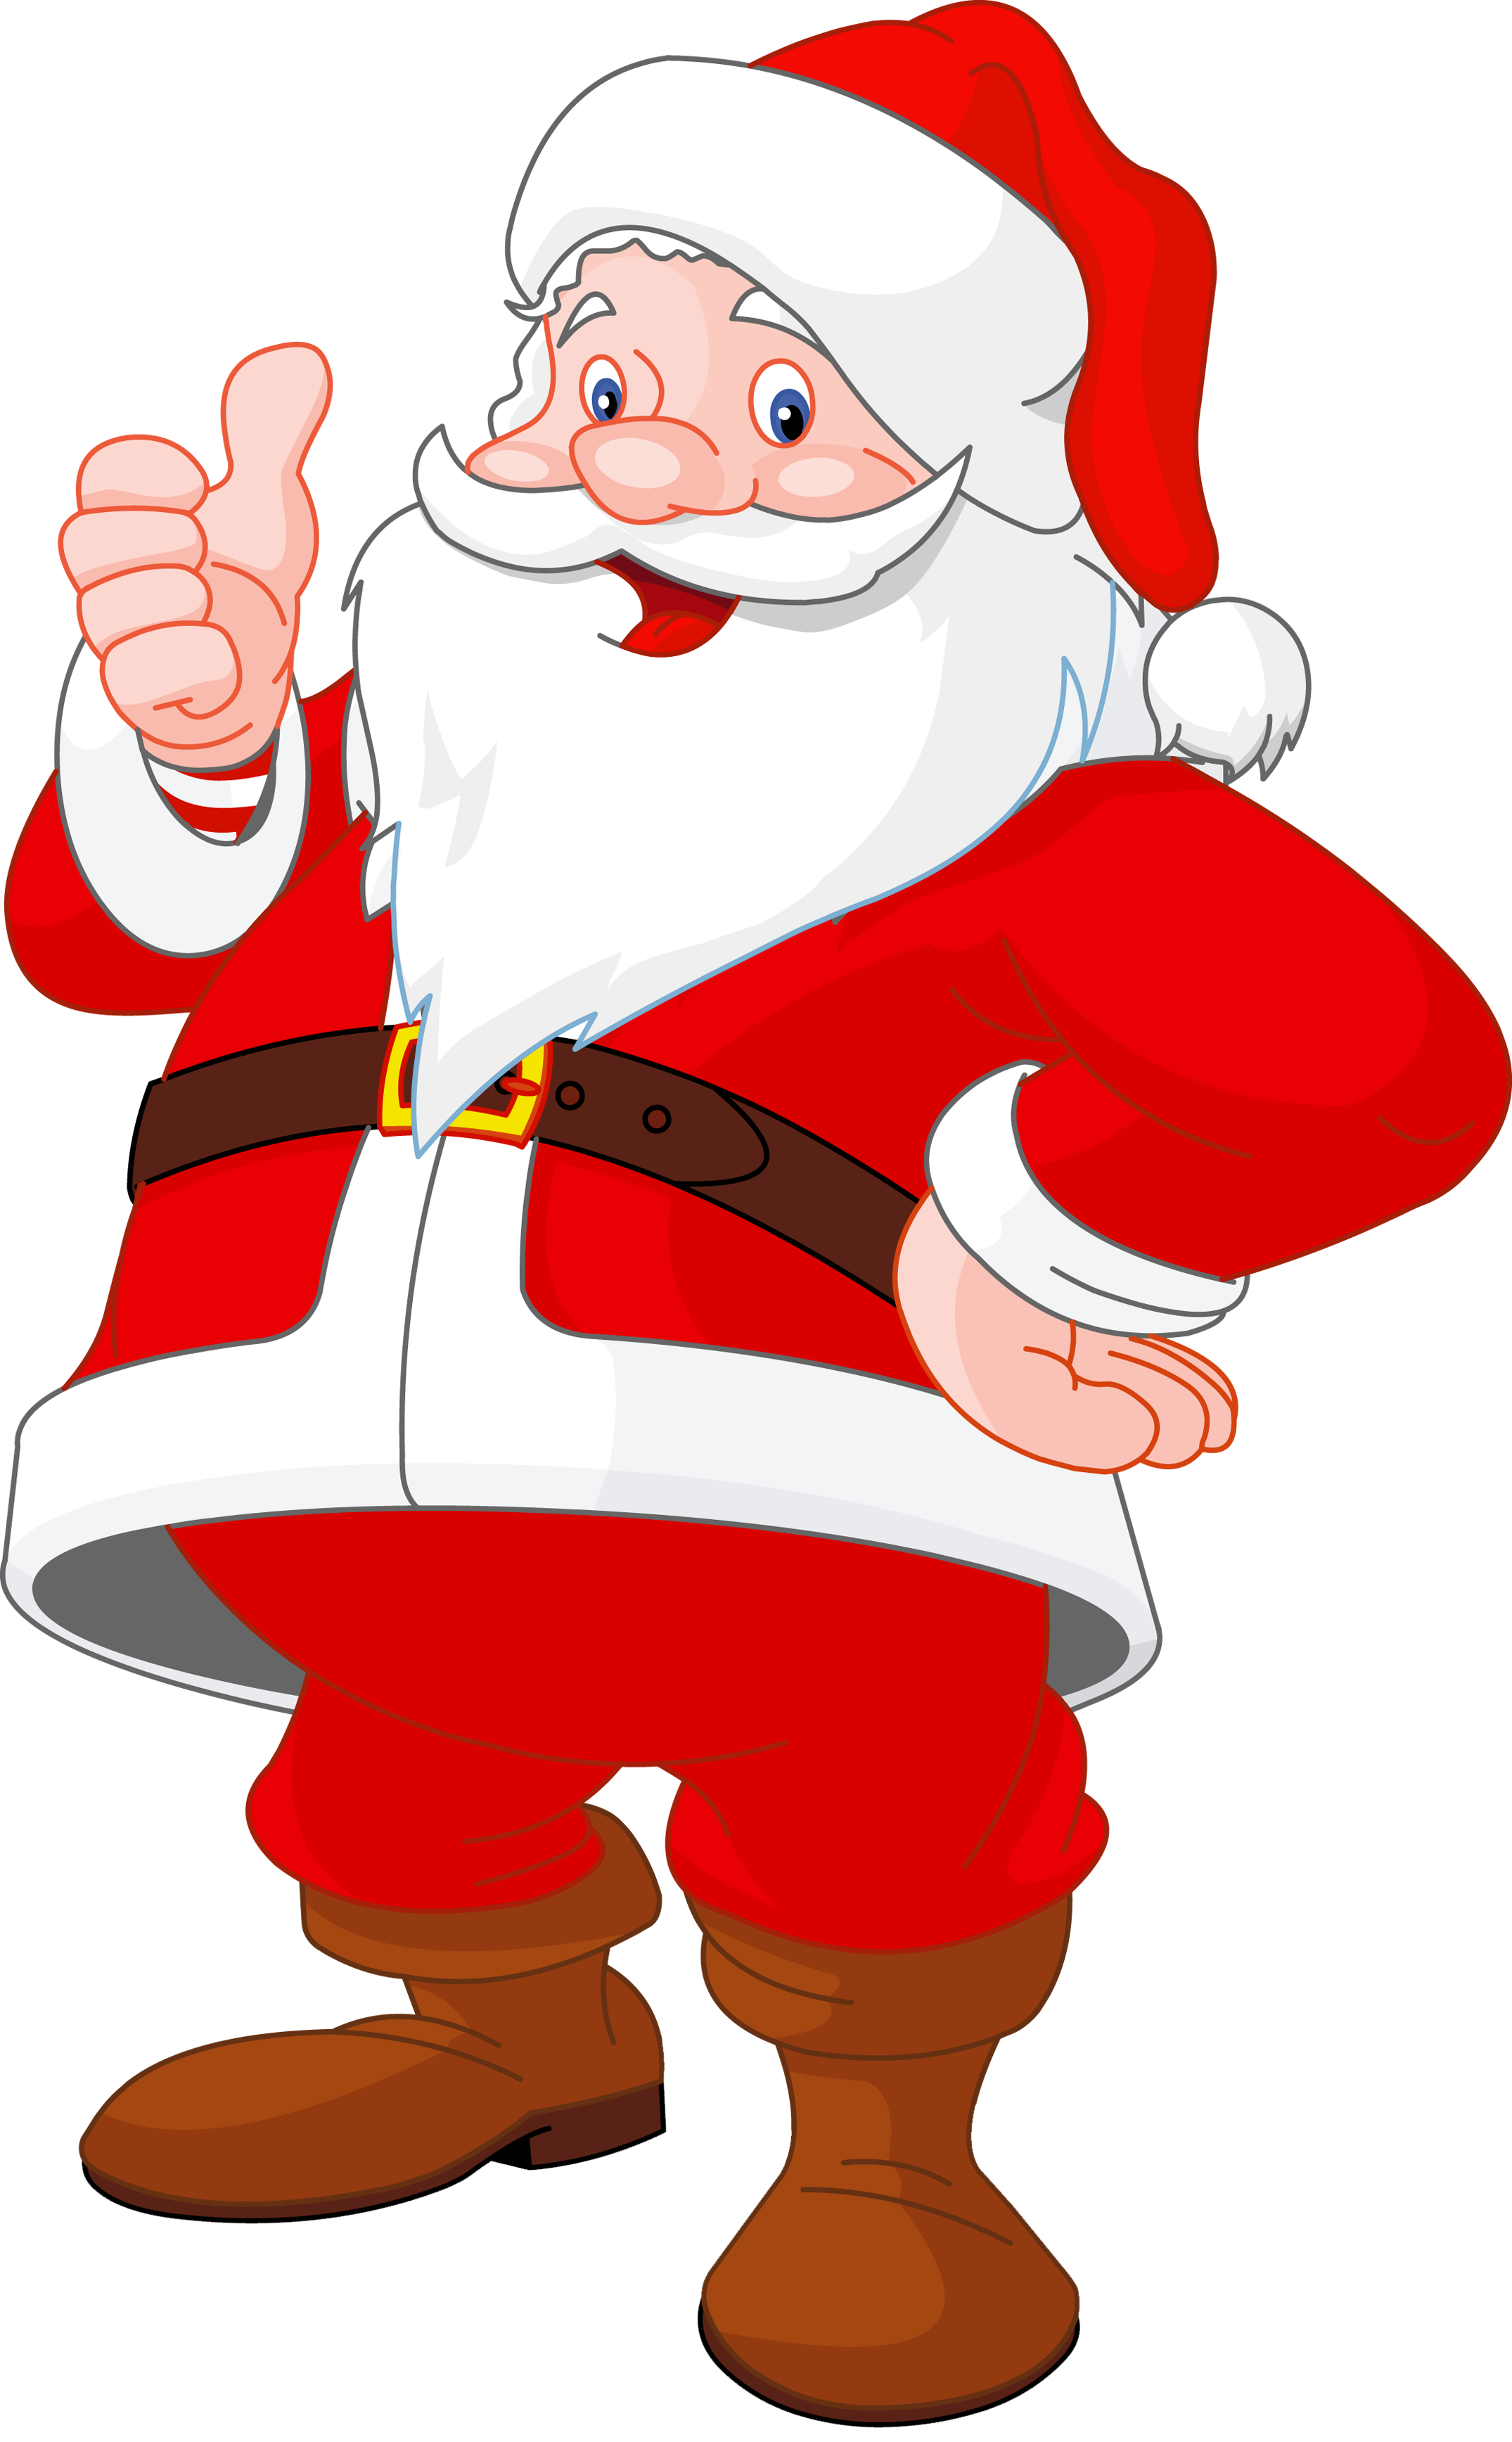 Transparent Santa Claus Gallery Yopriceville High